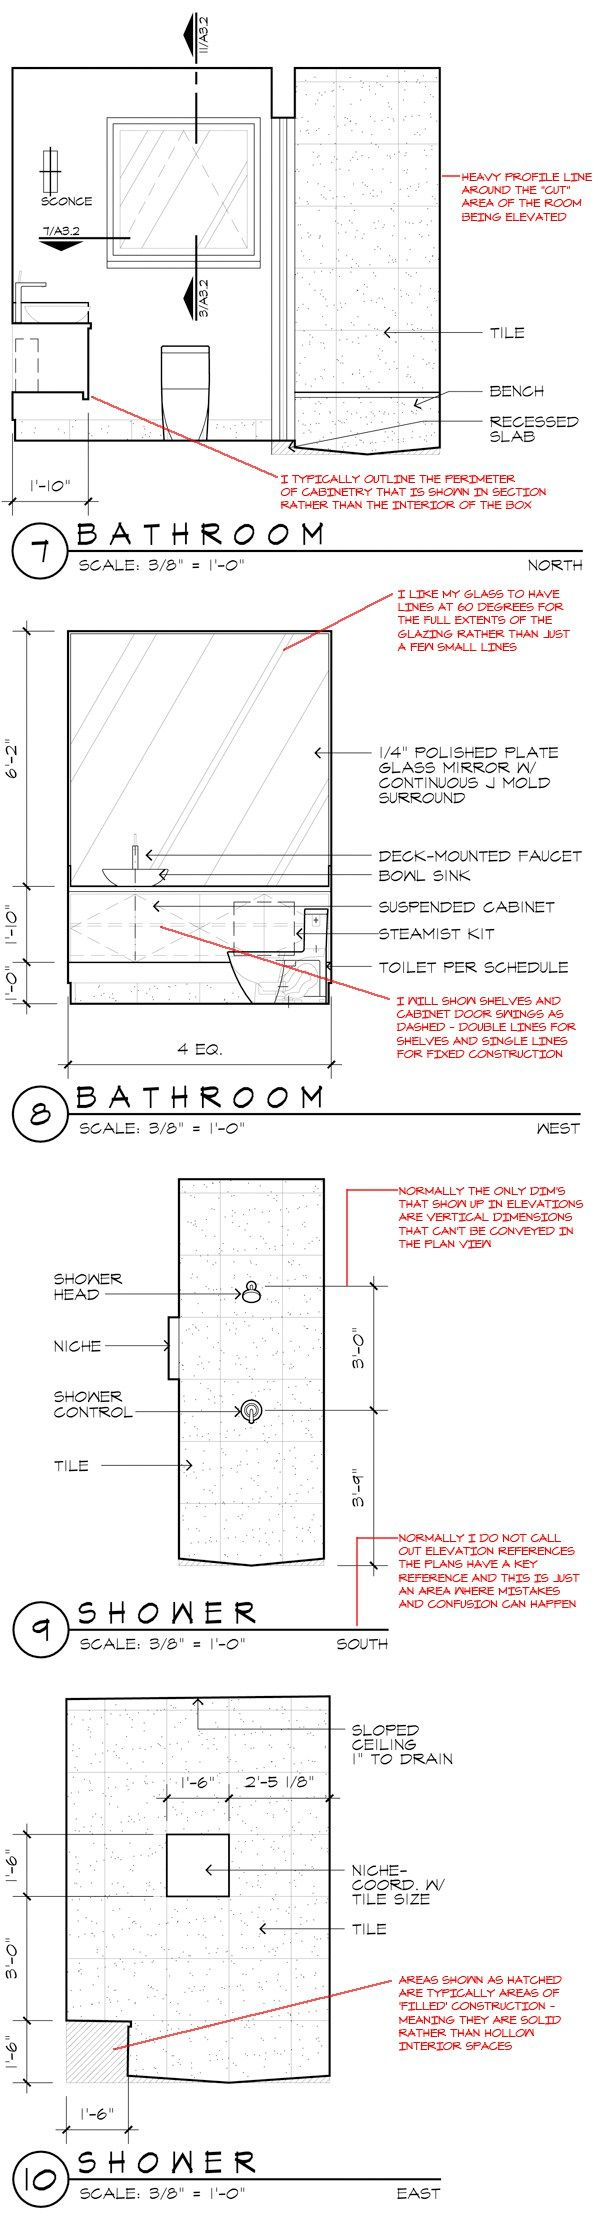 22 best images about graphics general on pinterest - Interior graphic and design standards ...